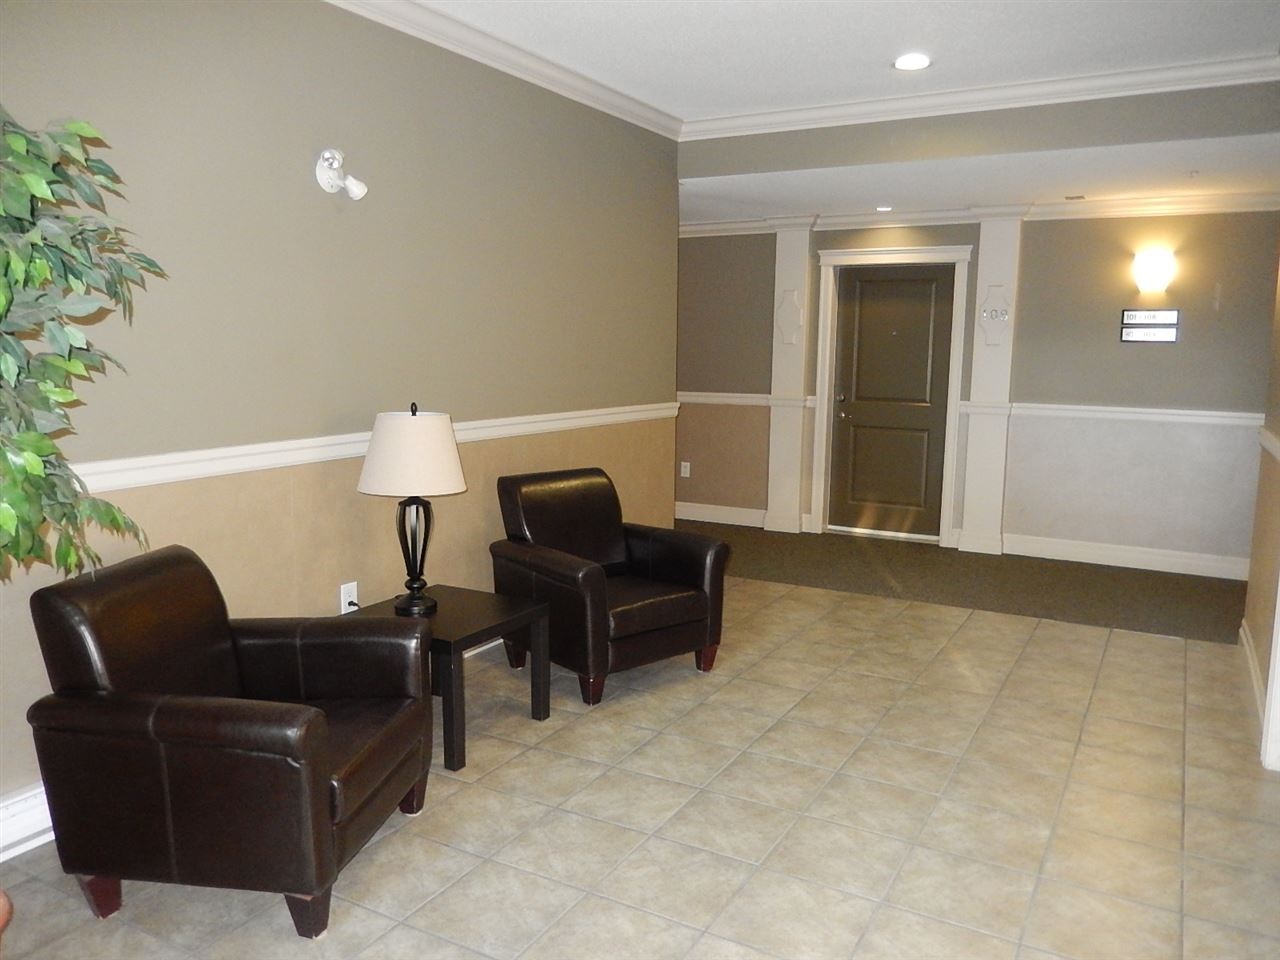 Condo Apartment at 208B 45595 TAMIHI WAY, Unit 208B, Sardis, British Columbia. Image 3